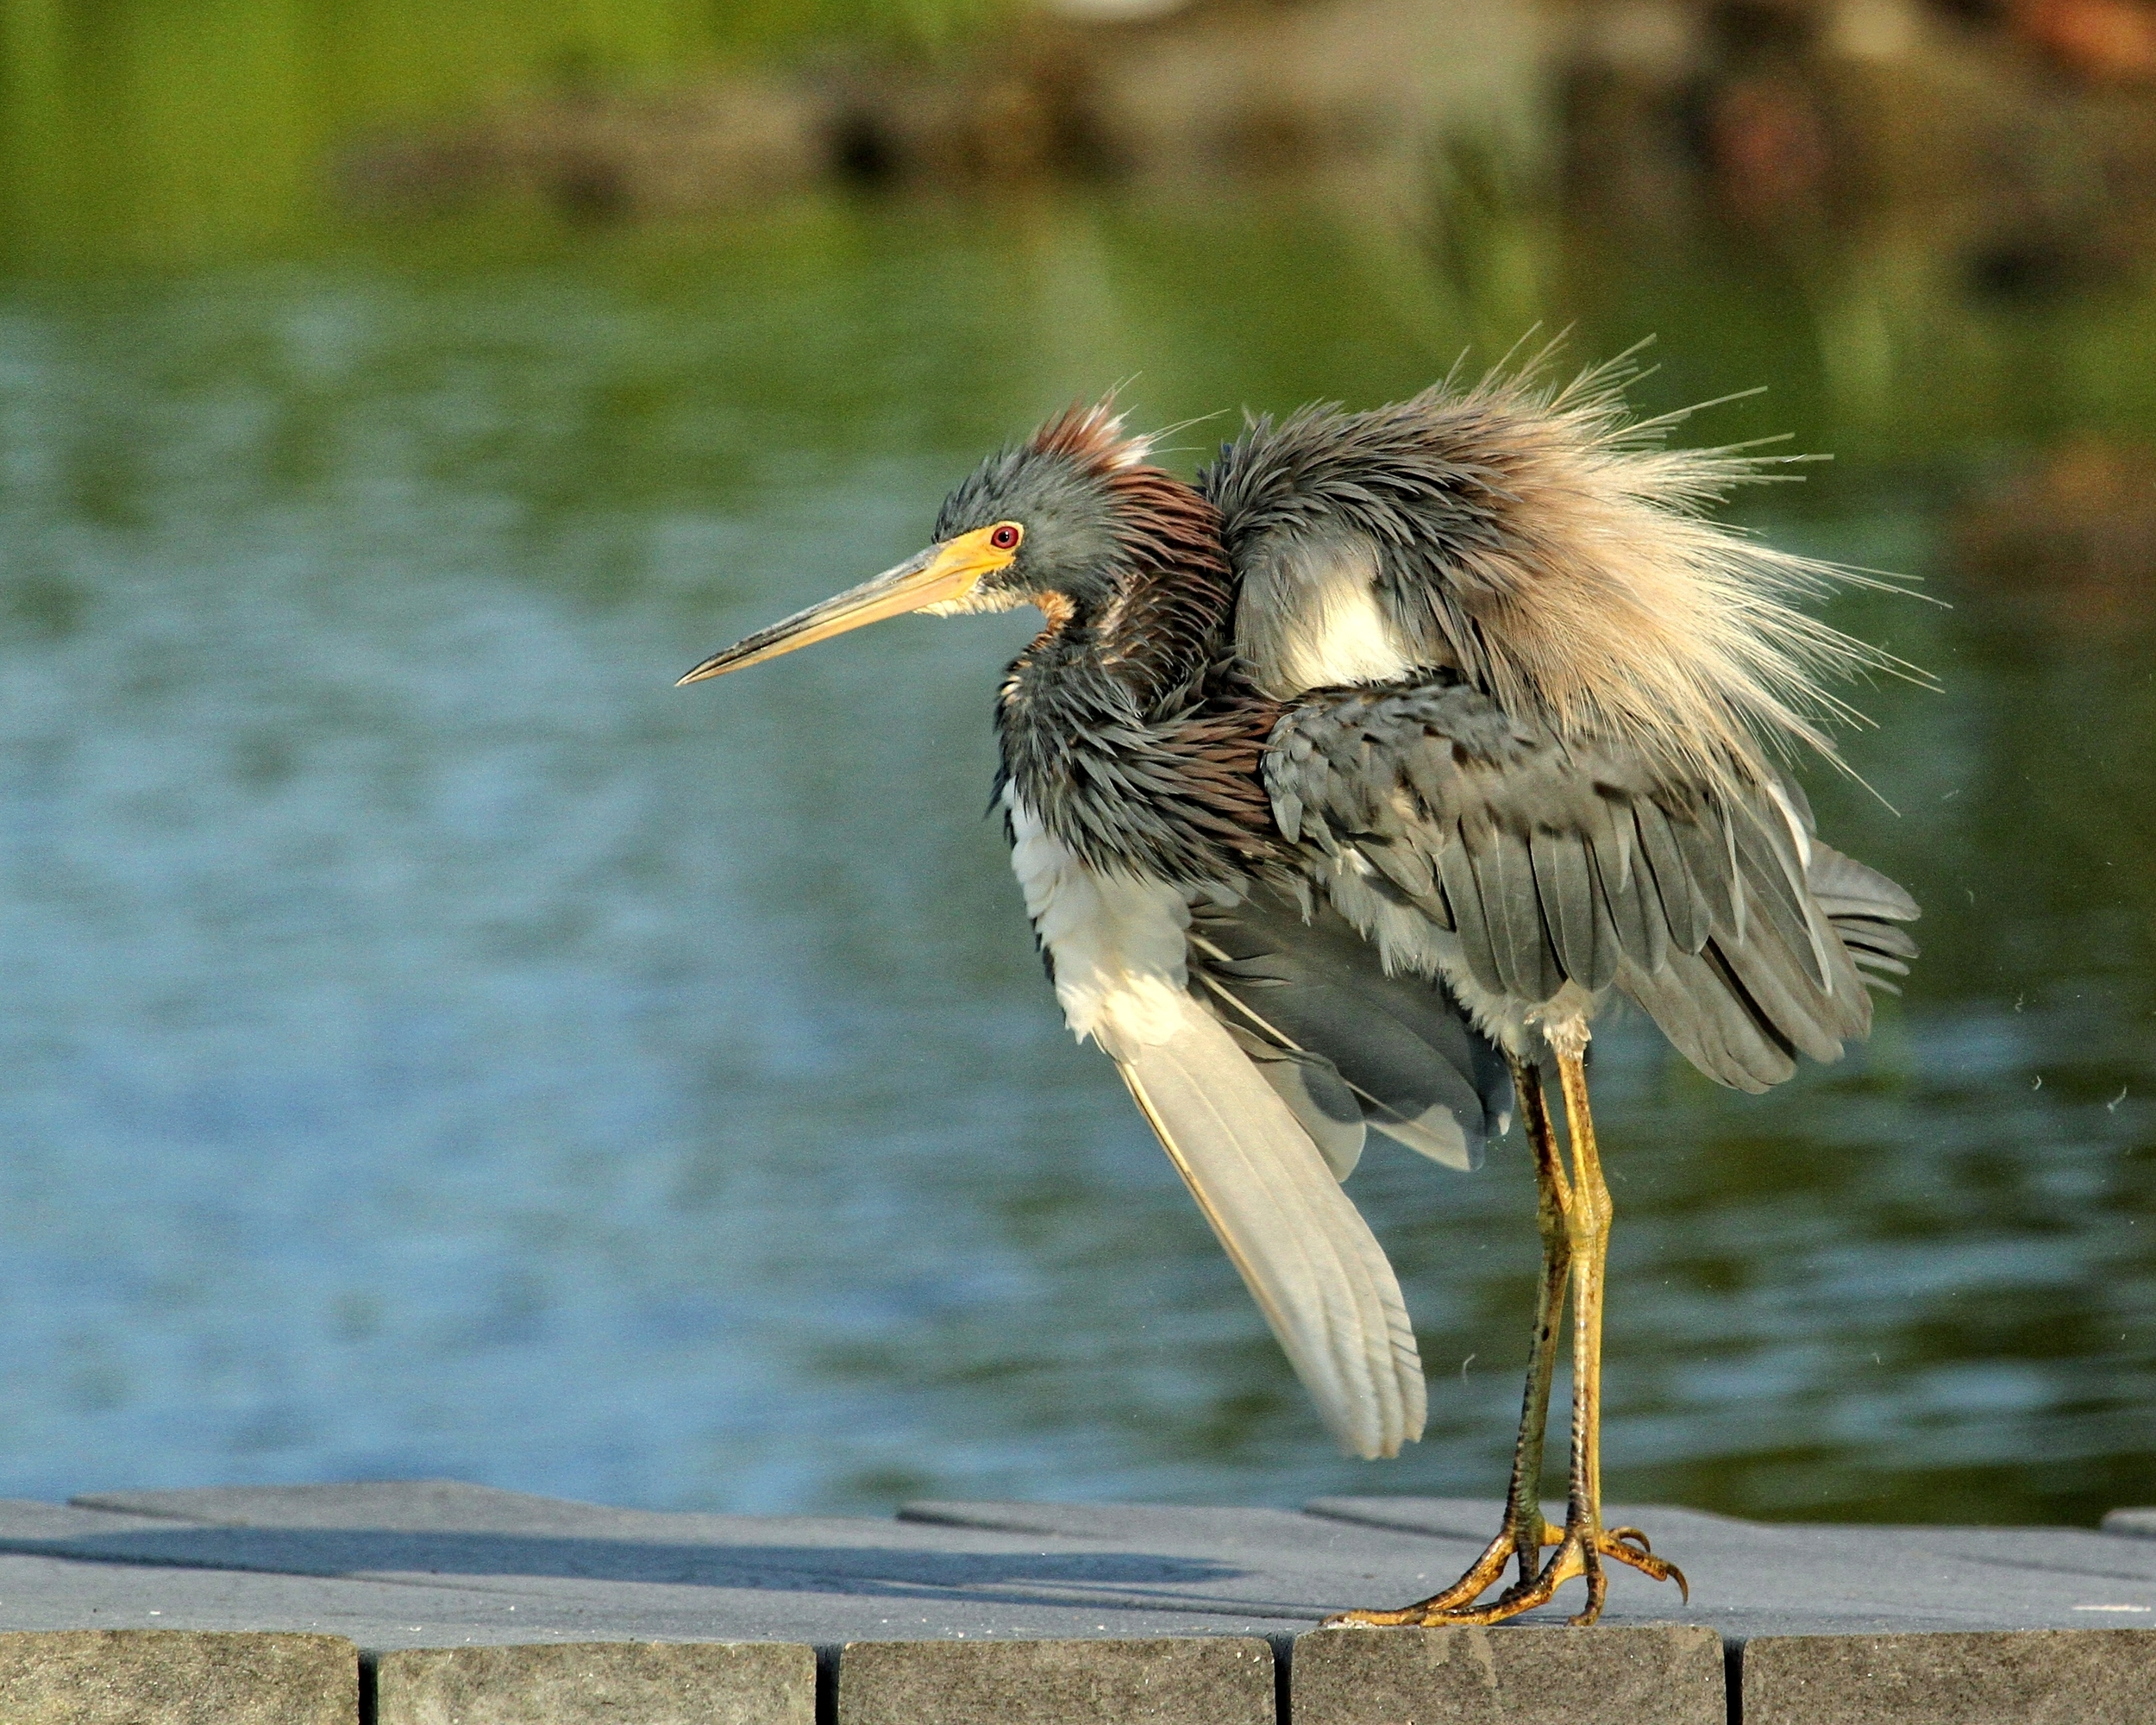 The Black Crowned night herons are not the only ones ruffled..so is the Tricolored Heron...